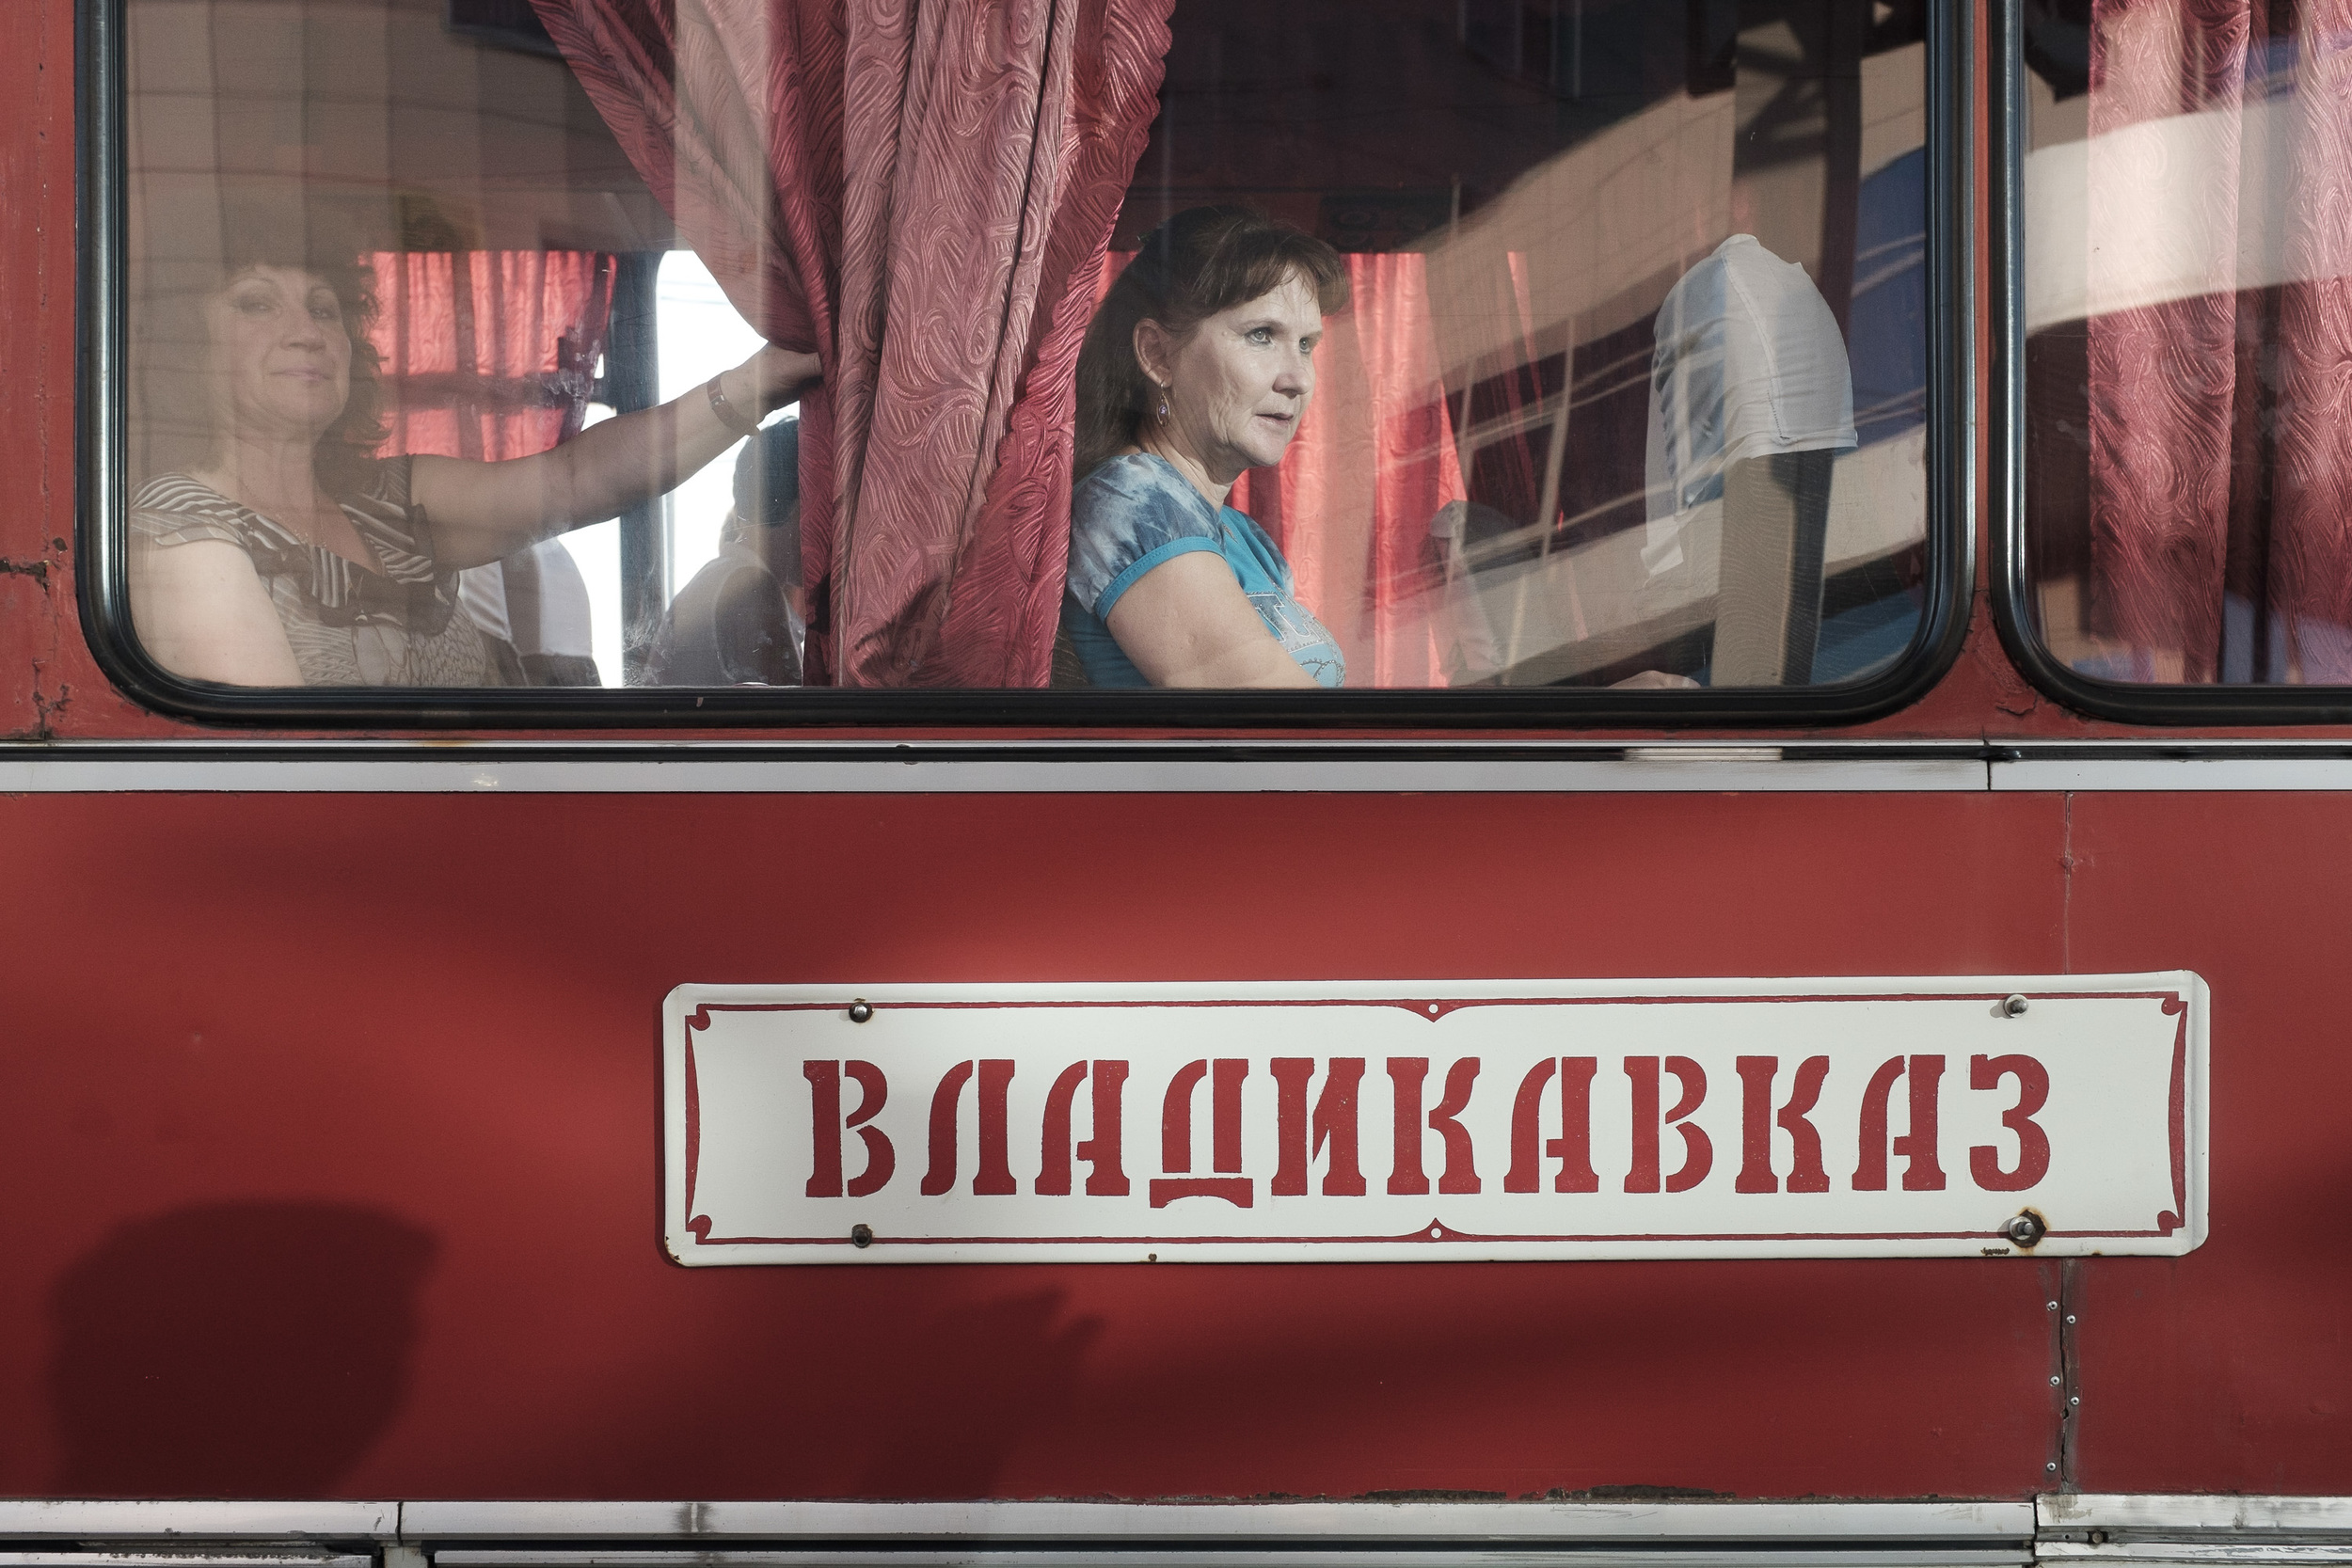 On the board. Astrakhan-Vladikavkaz daily bus service